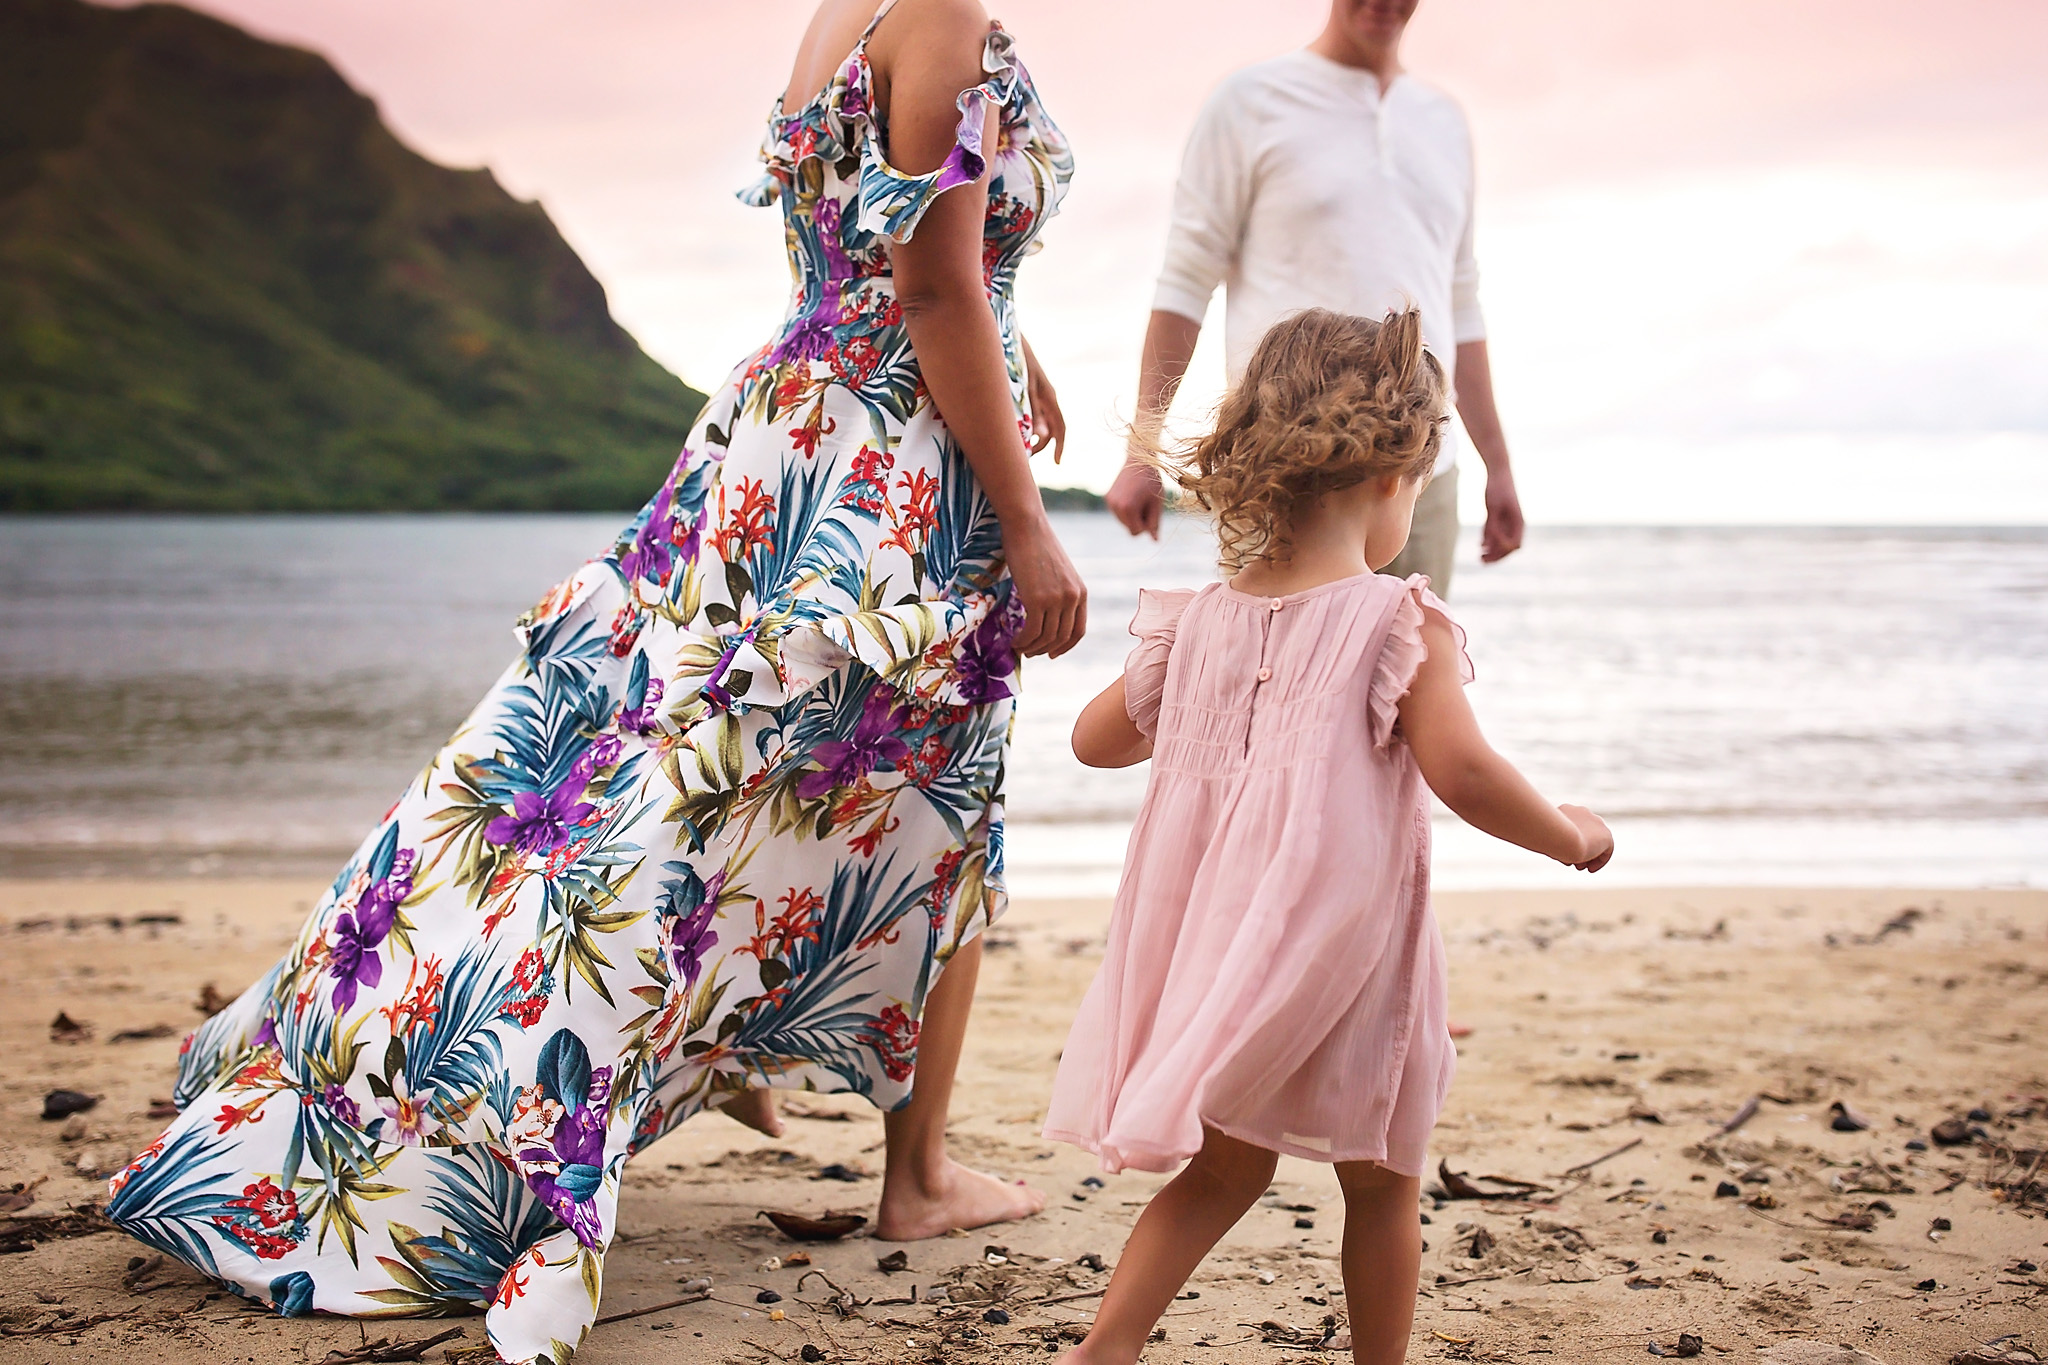 Mother and father standing on the beach looking over at their toddler daughter exploring on the beach in a pink dress.